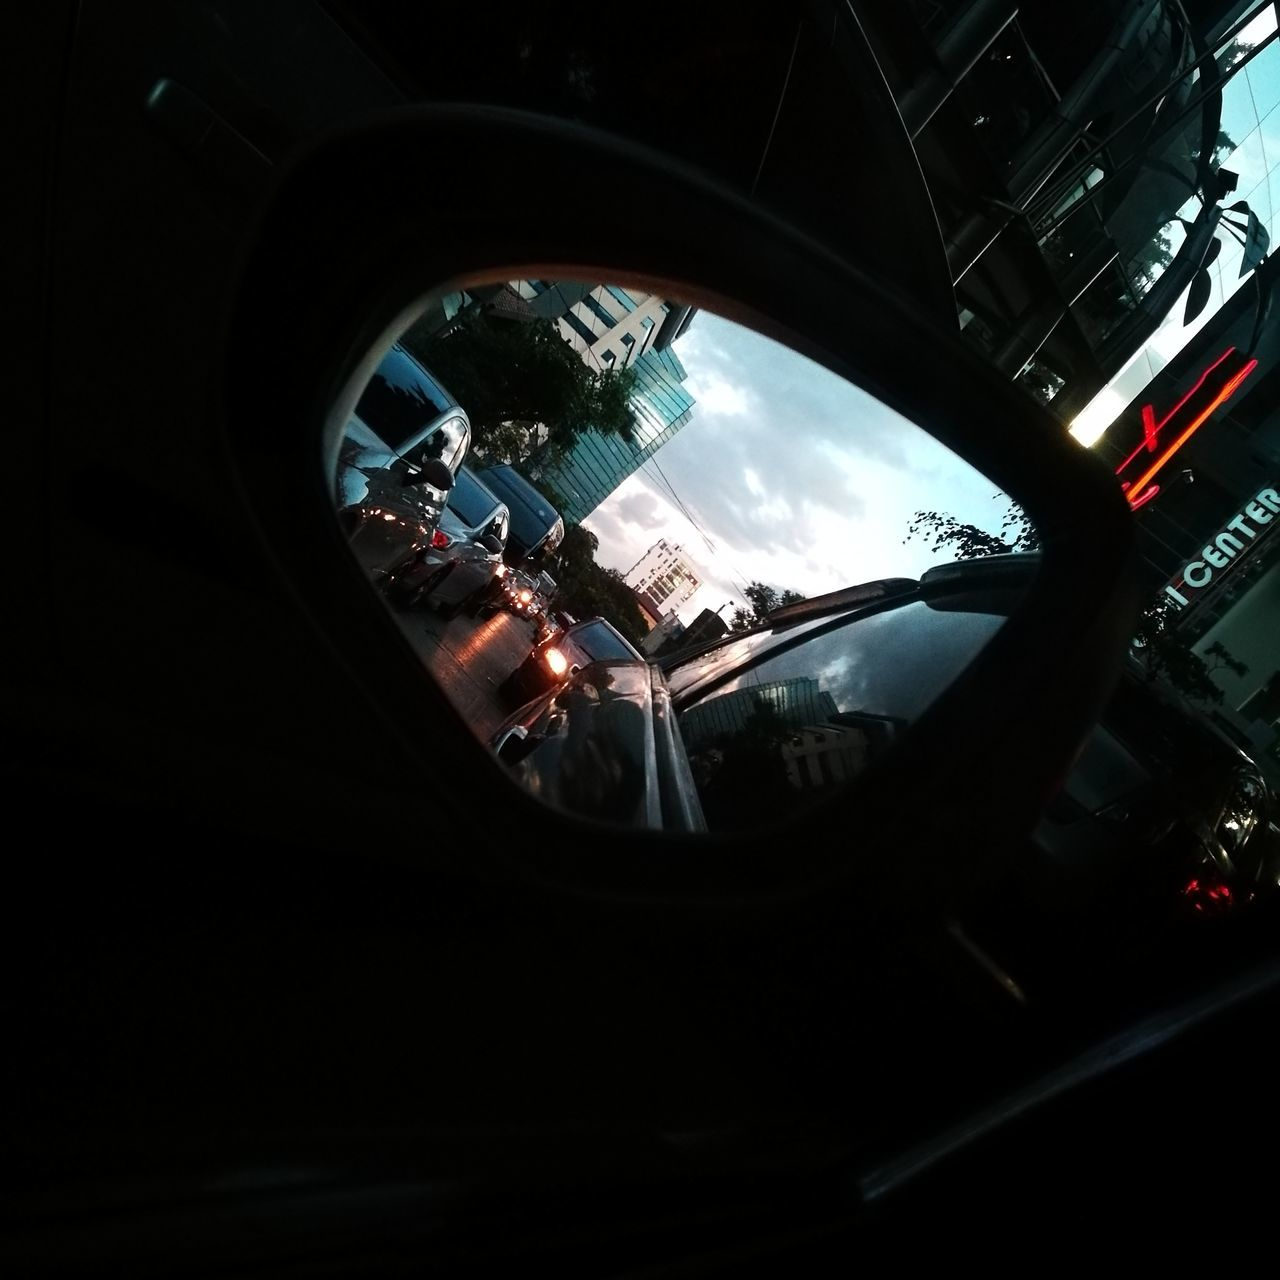 reflection, car, window, transportation, side-view mirror, land vehicle, indoors, no people, day, sky, architecture, close-up